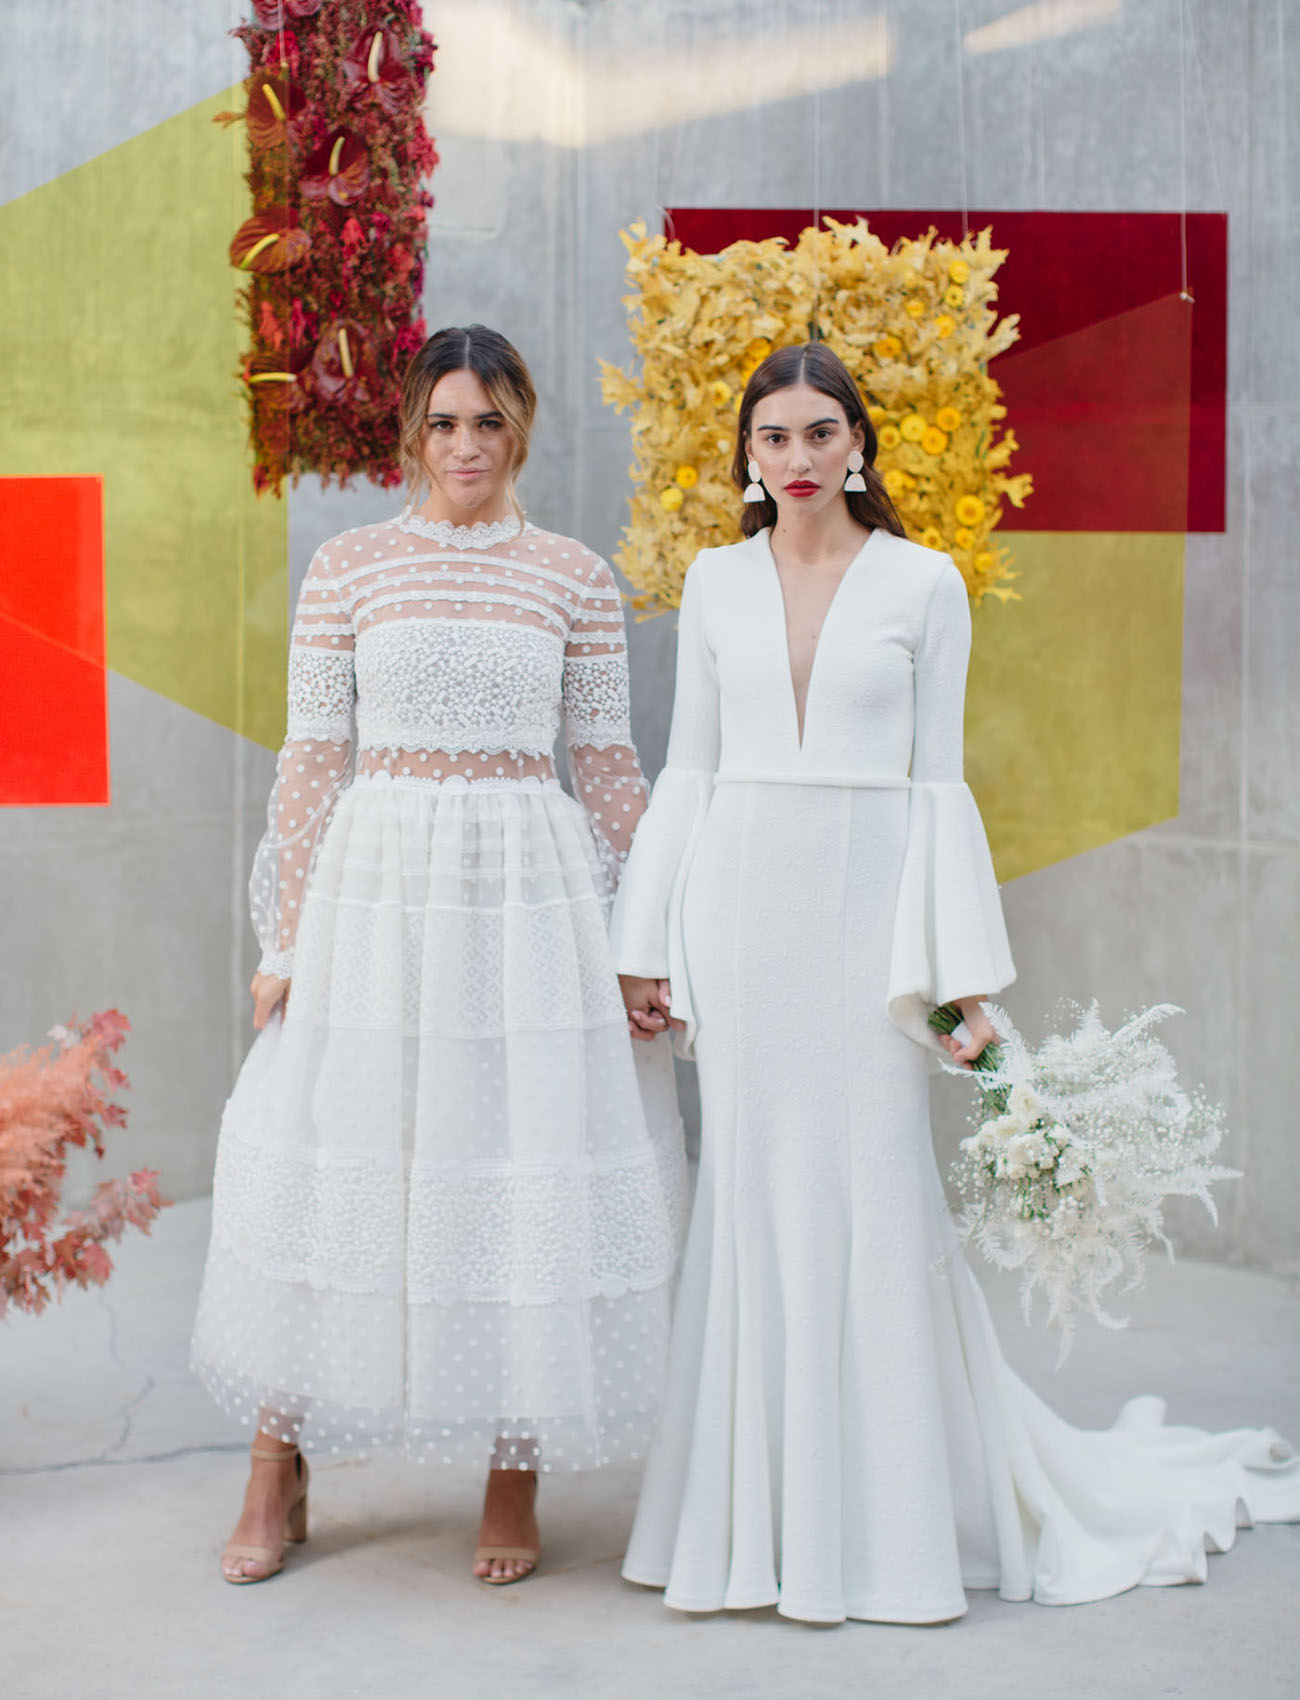 For the Love of Color: Bold High-Fashion-Inspired Color Block Wedding Editorial